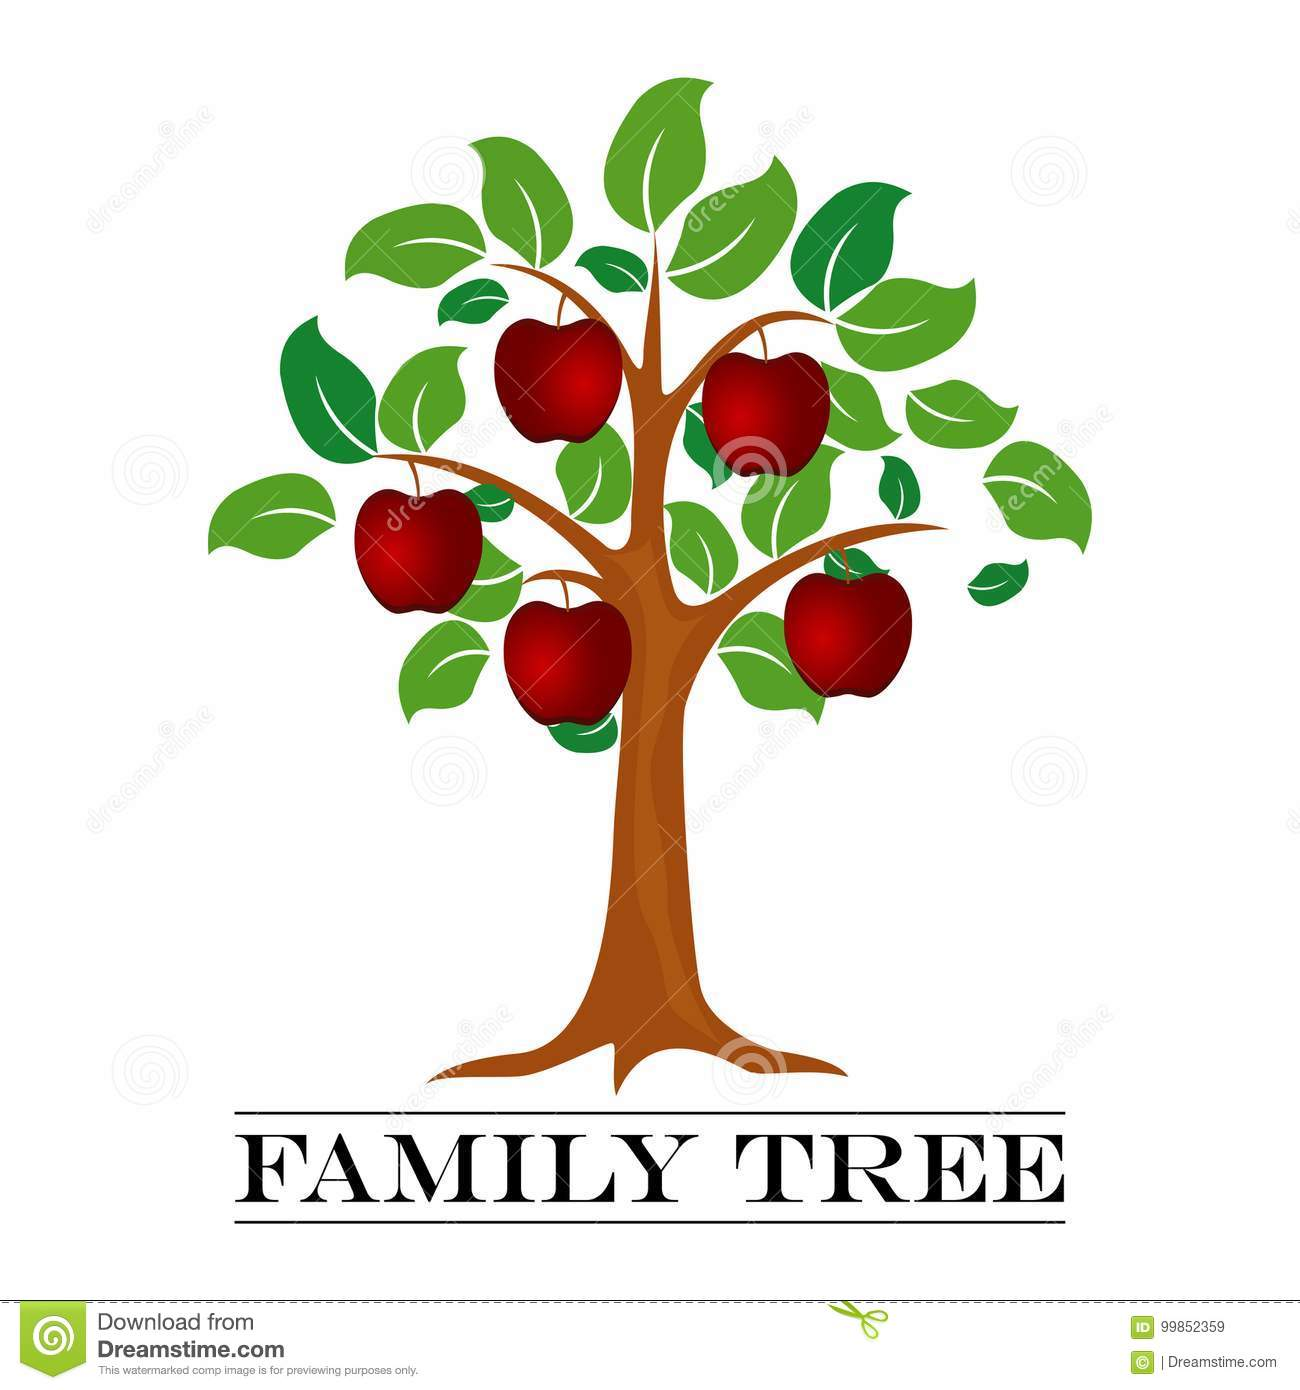 A Vector Illustration Of Family Tree Template. Stock